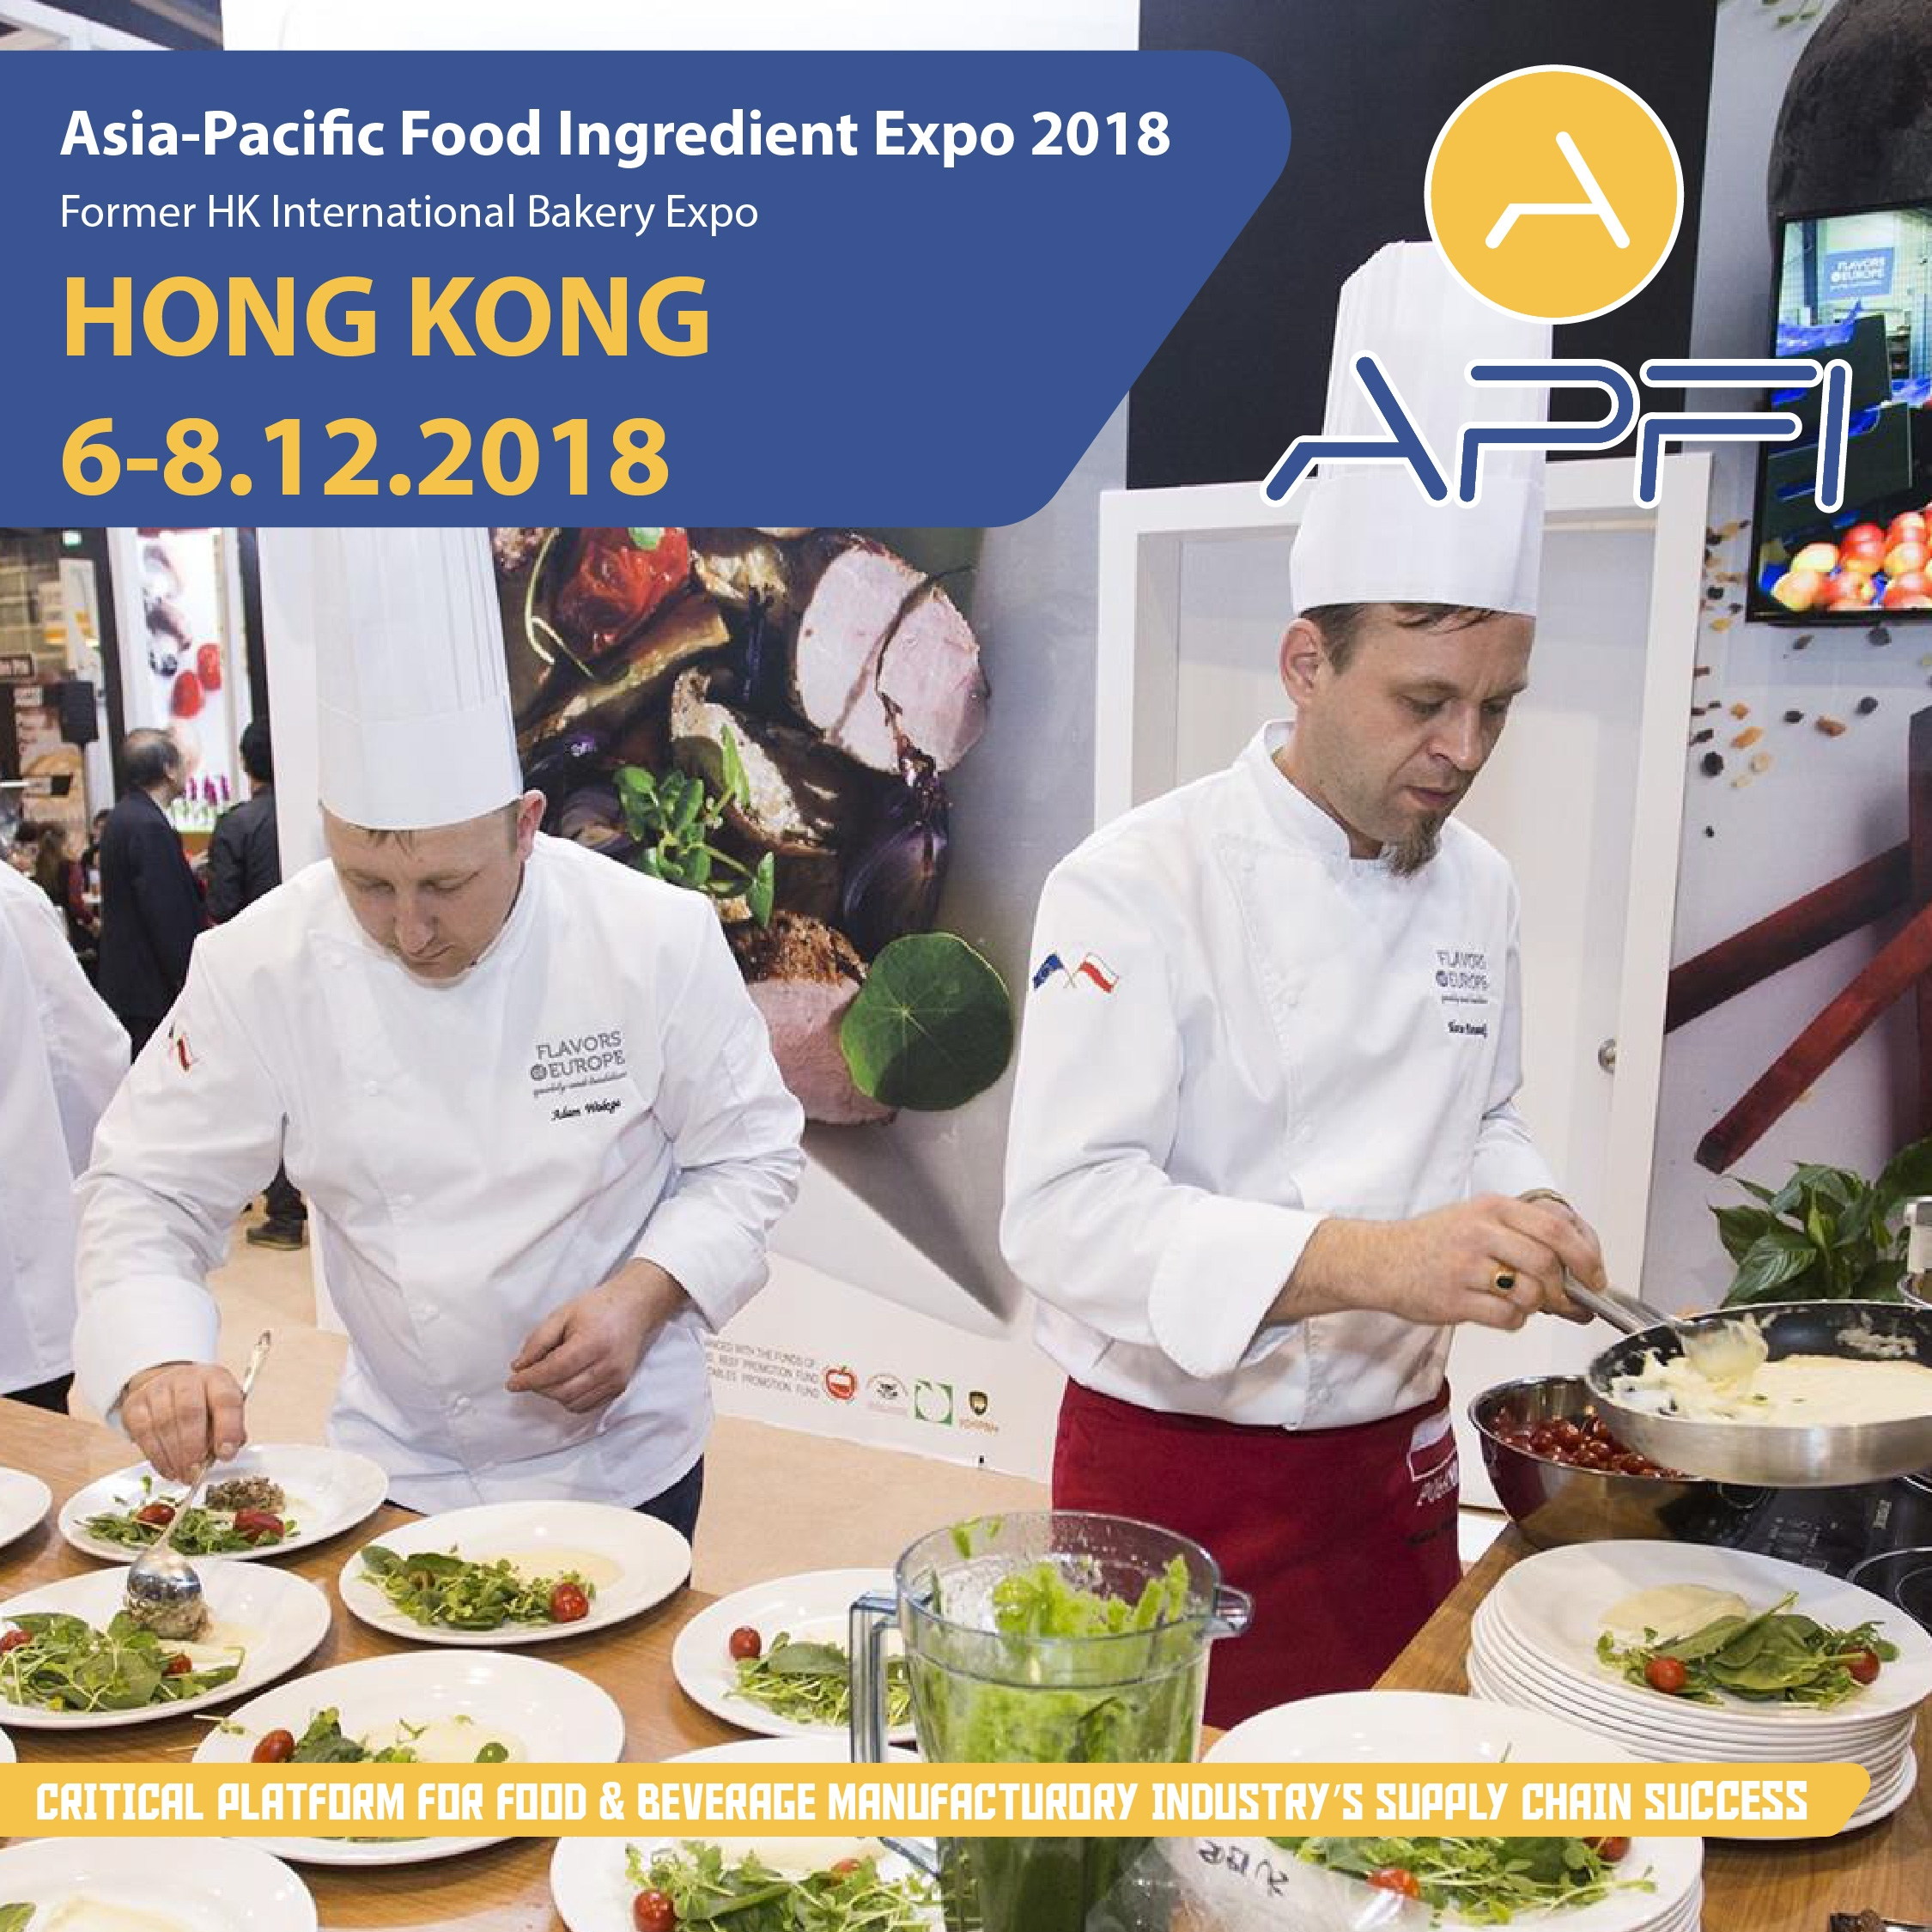 Expo Cuisine Asia Pacific Food Ingredient Expo 2018 Apfi Bakery Global